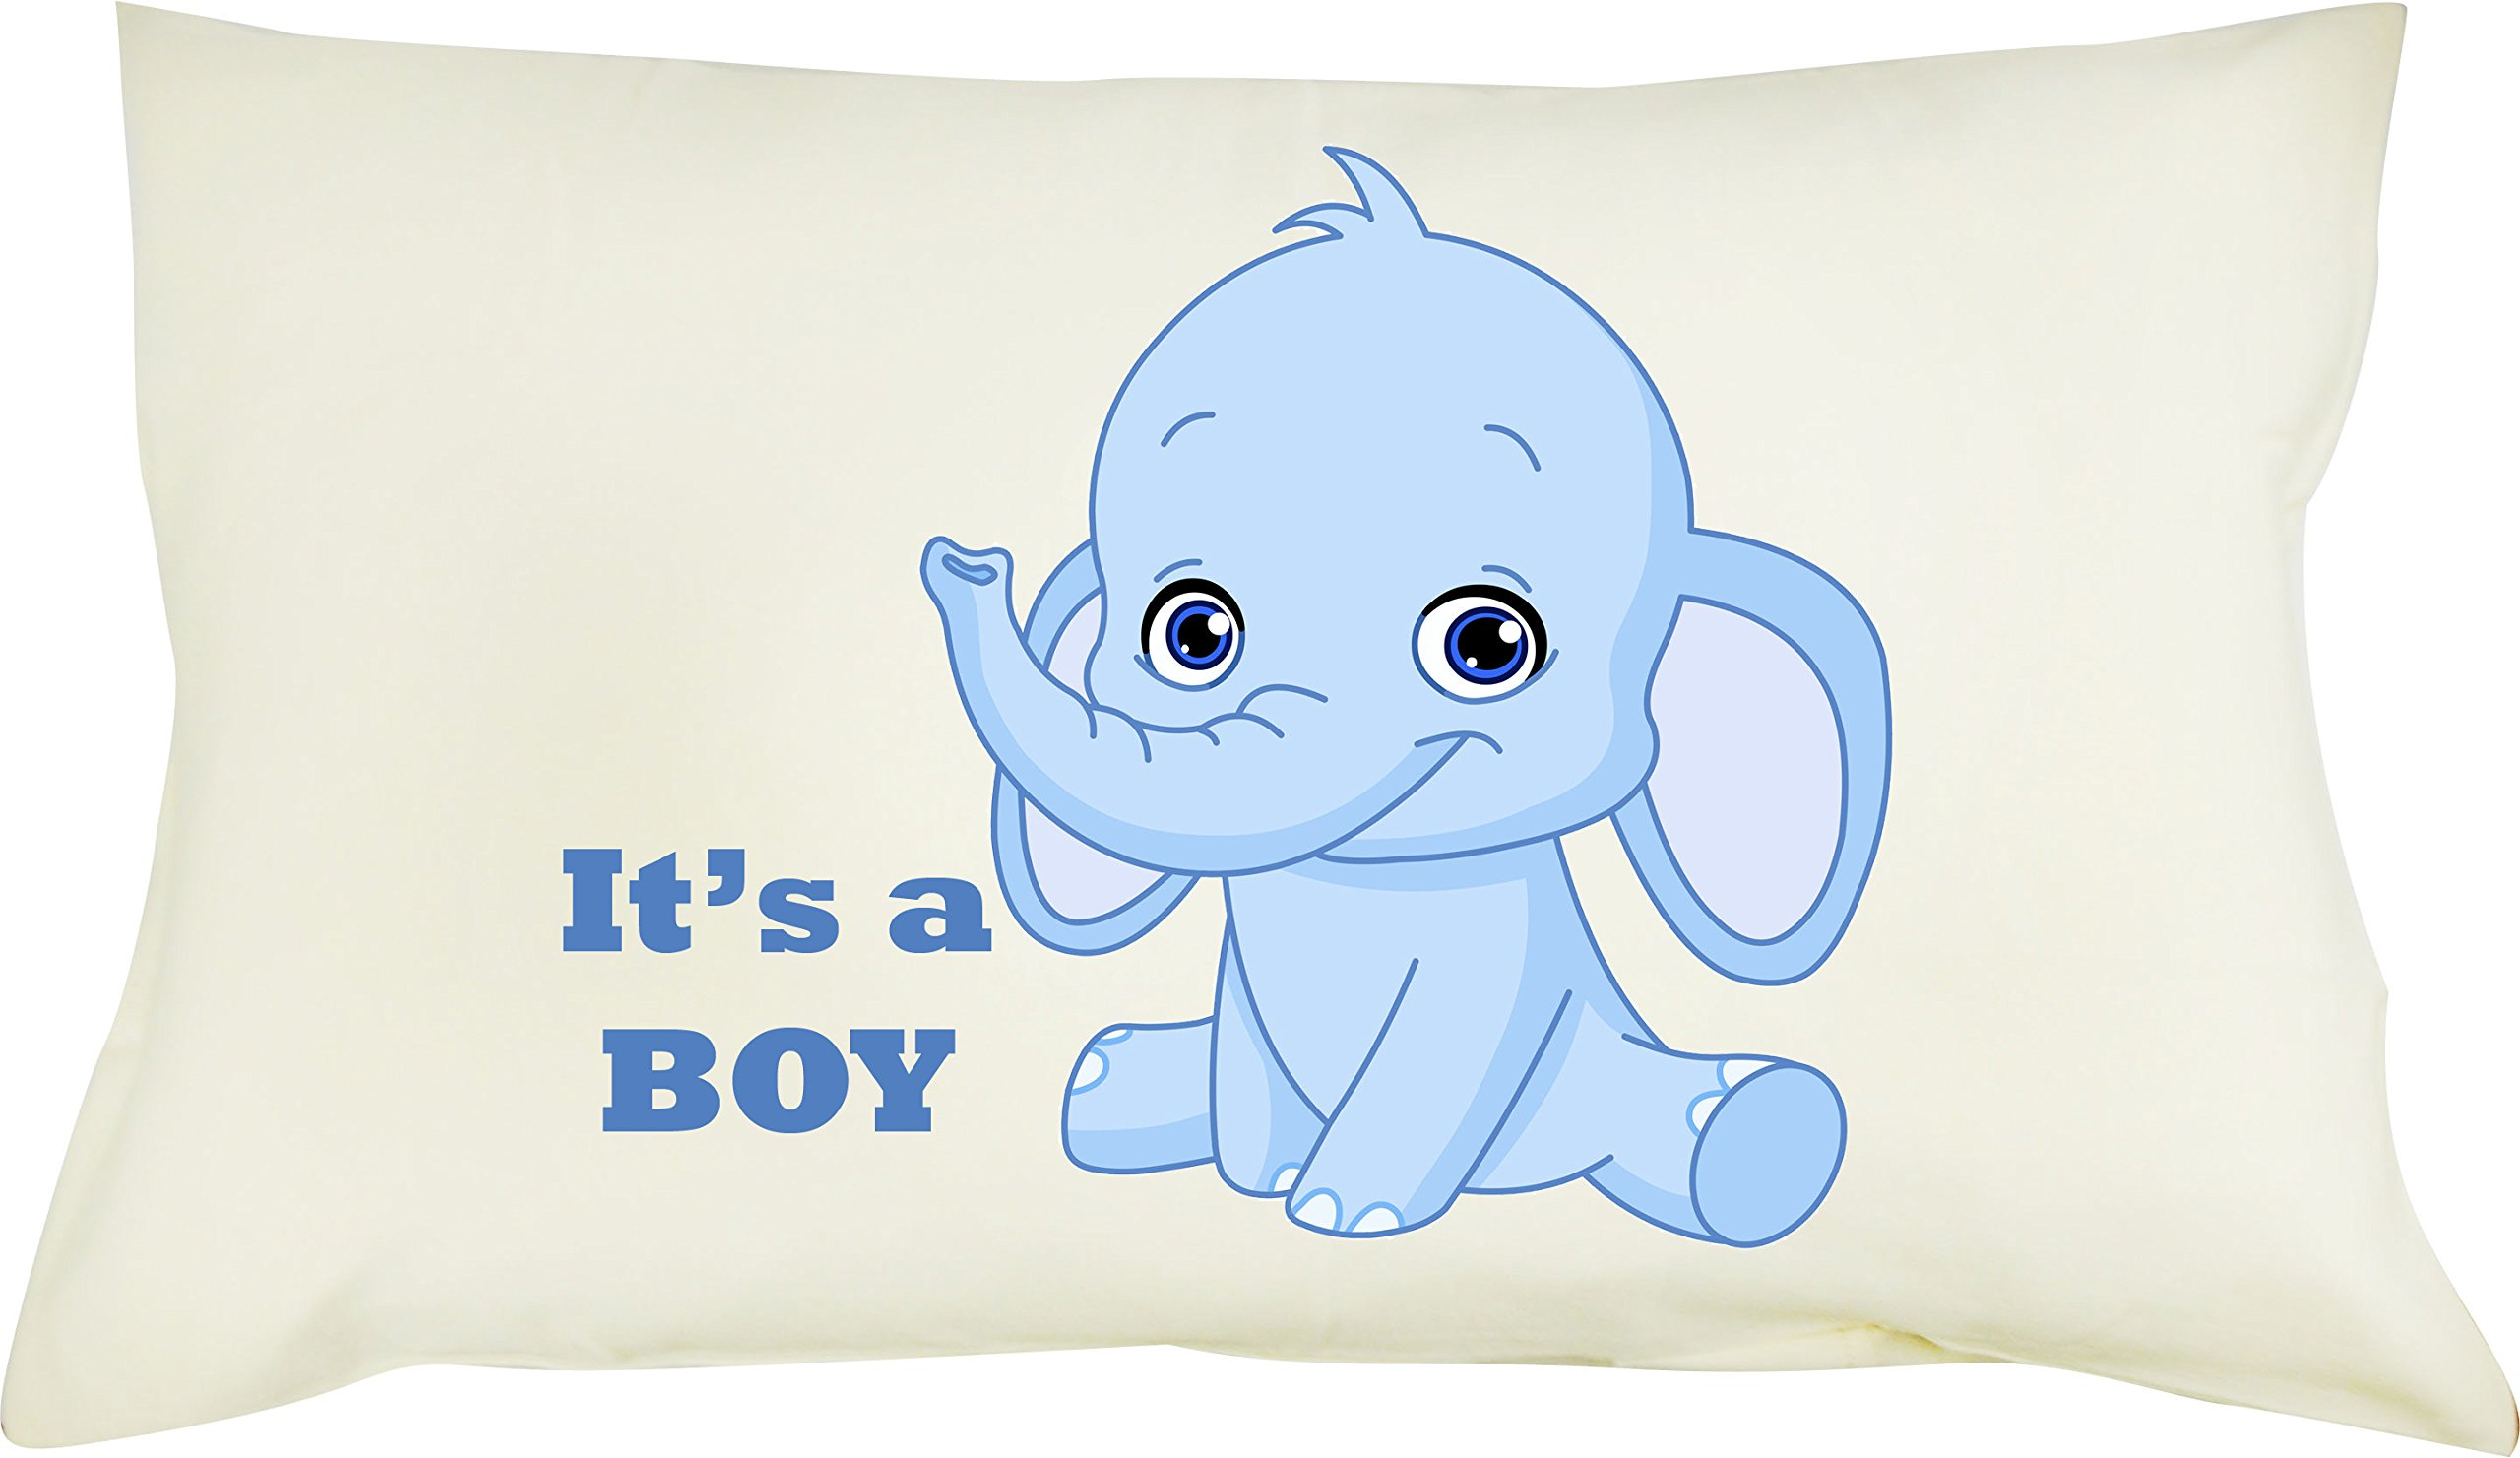 Totmart 100% Cotton Boys, Girls, Pillowcase with Hypoallergenic Pillow for Toddler 19 X 12.5 Monkey, Elephant pictures (Blue elephant)